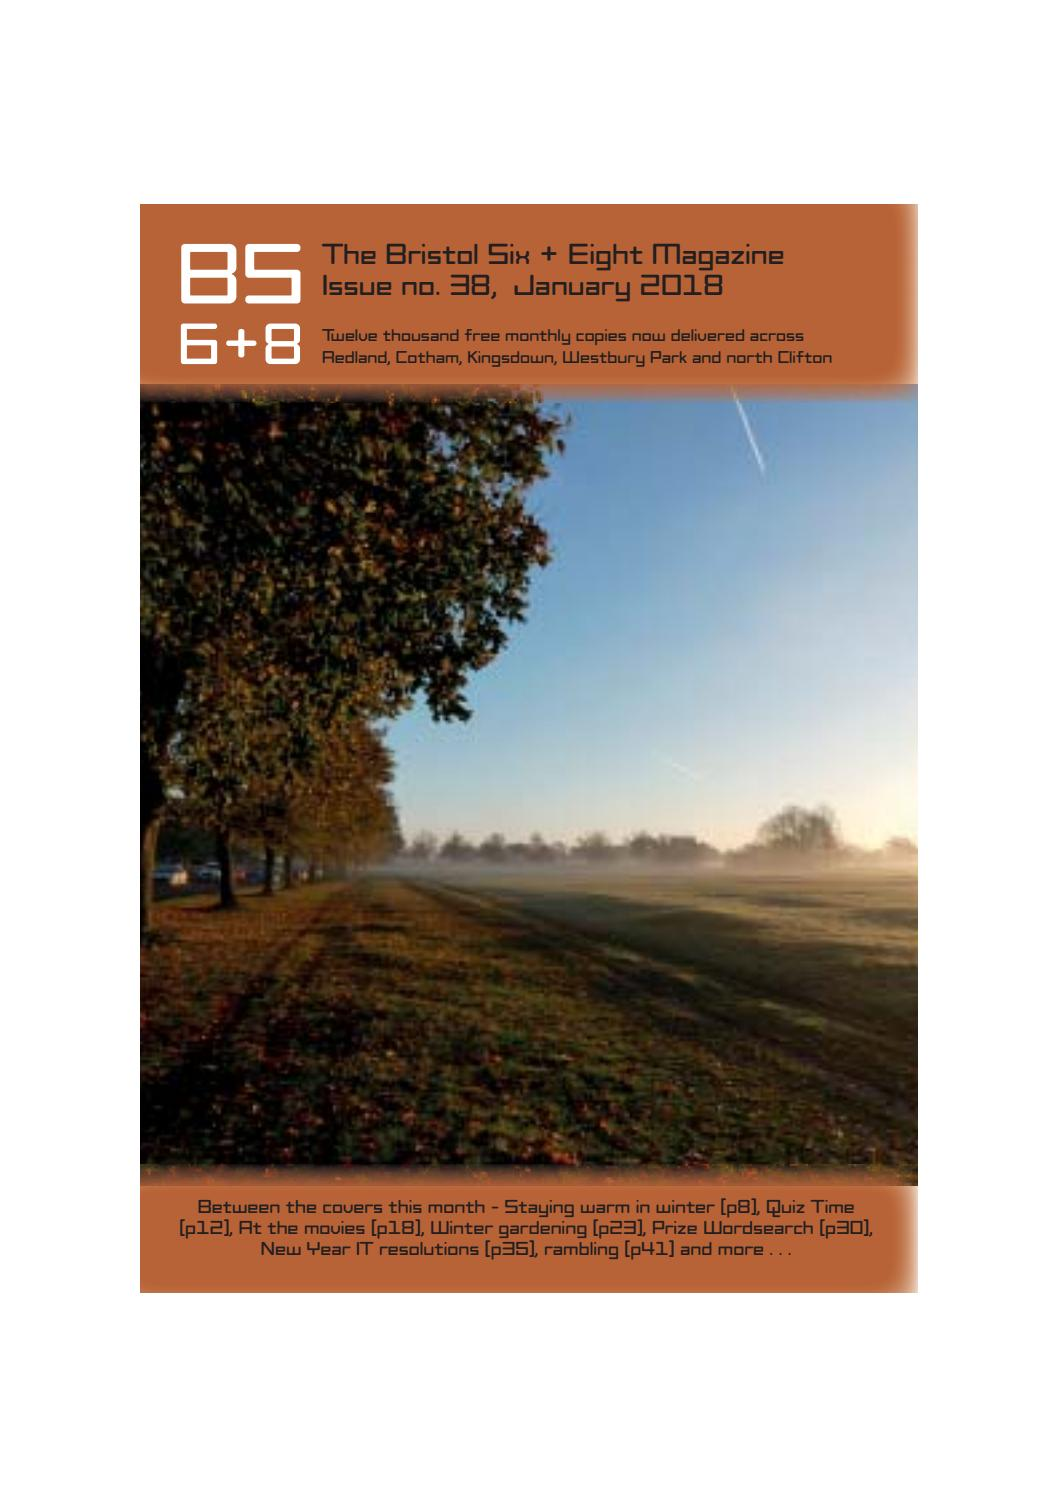 The Bristol Six + Eight magazine - January 2018 by Andy